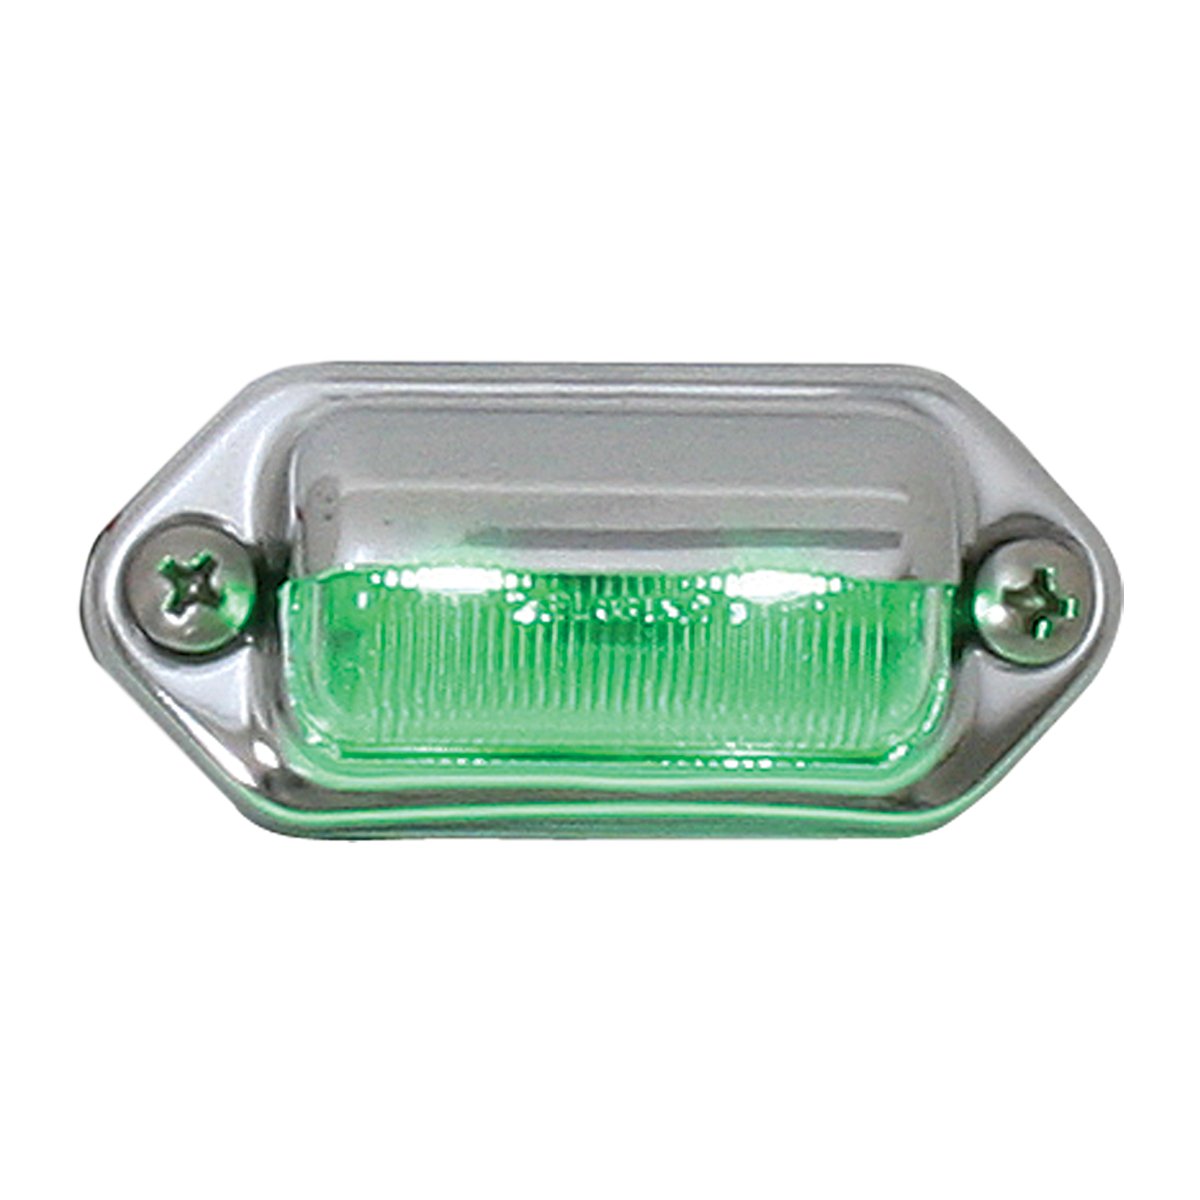 81732 Green Interior/Utility LED Light